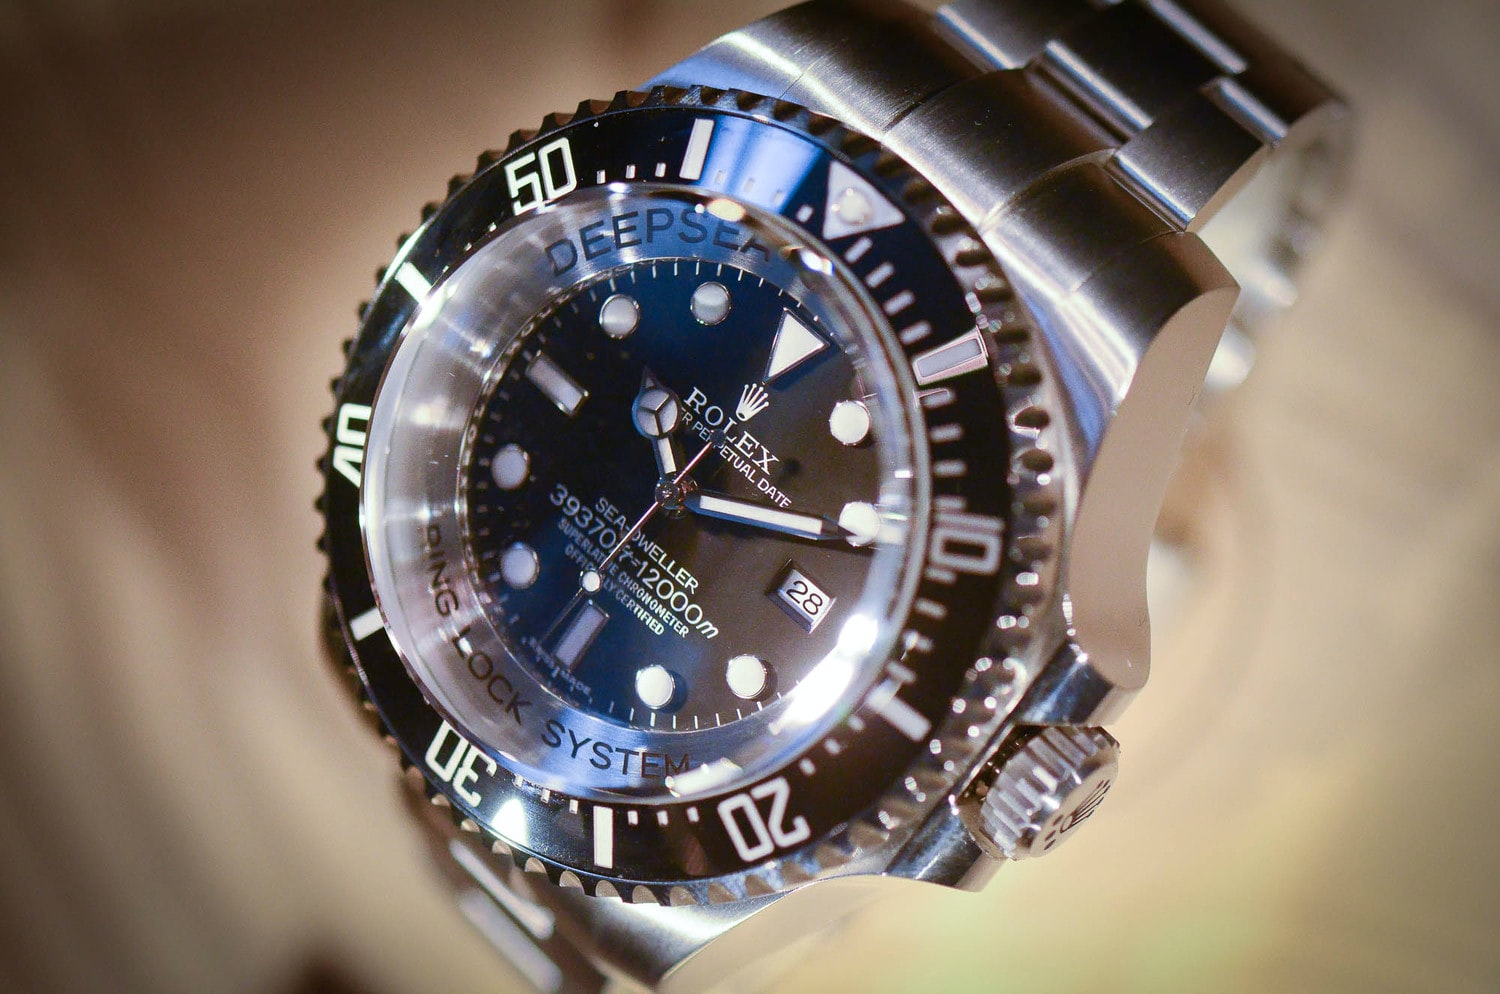 Photo Report: The Rolex Deep Sea Challenge That Accompanied James Cameron Into The Mariana Trench